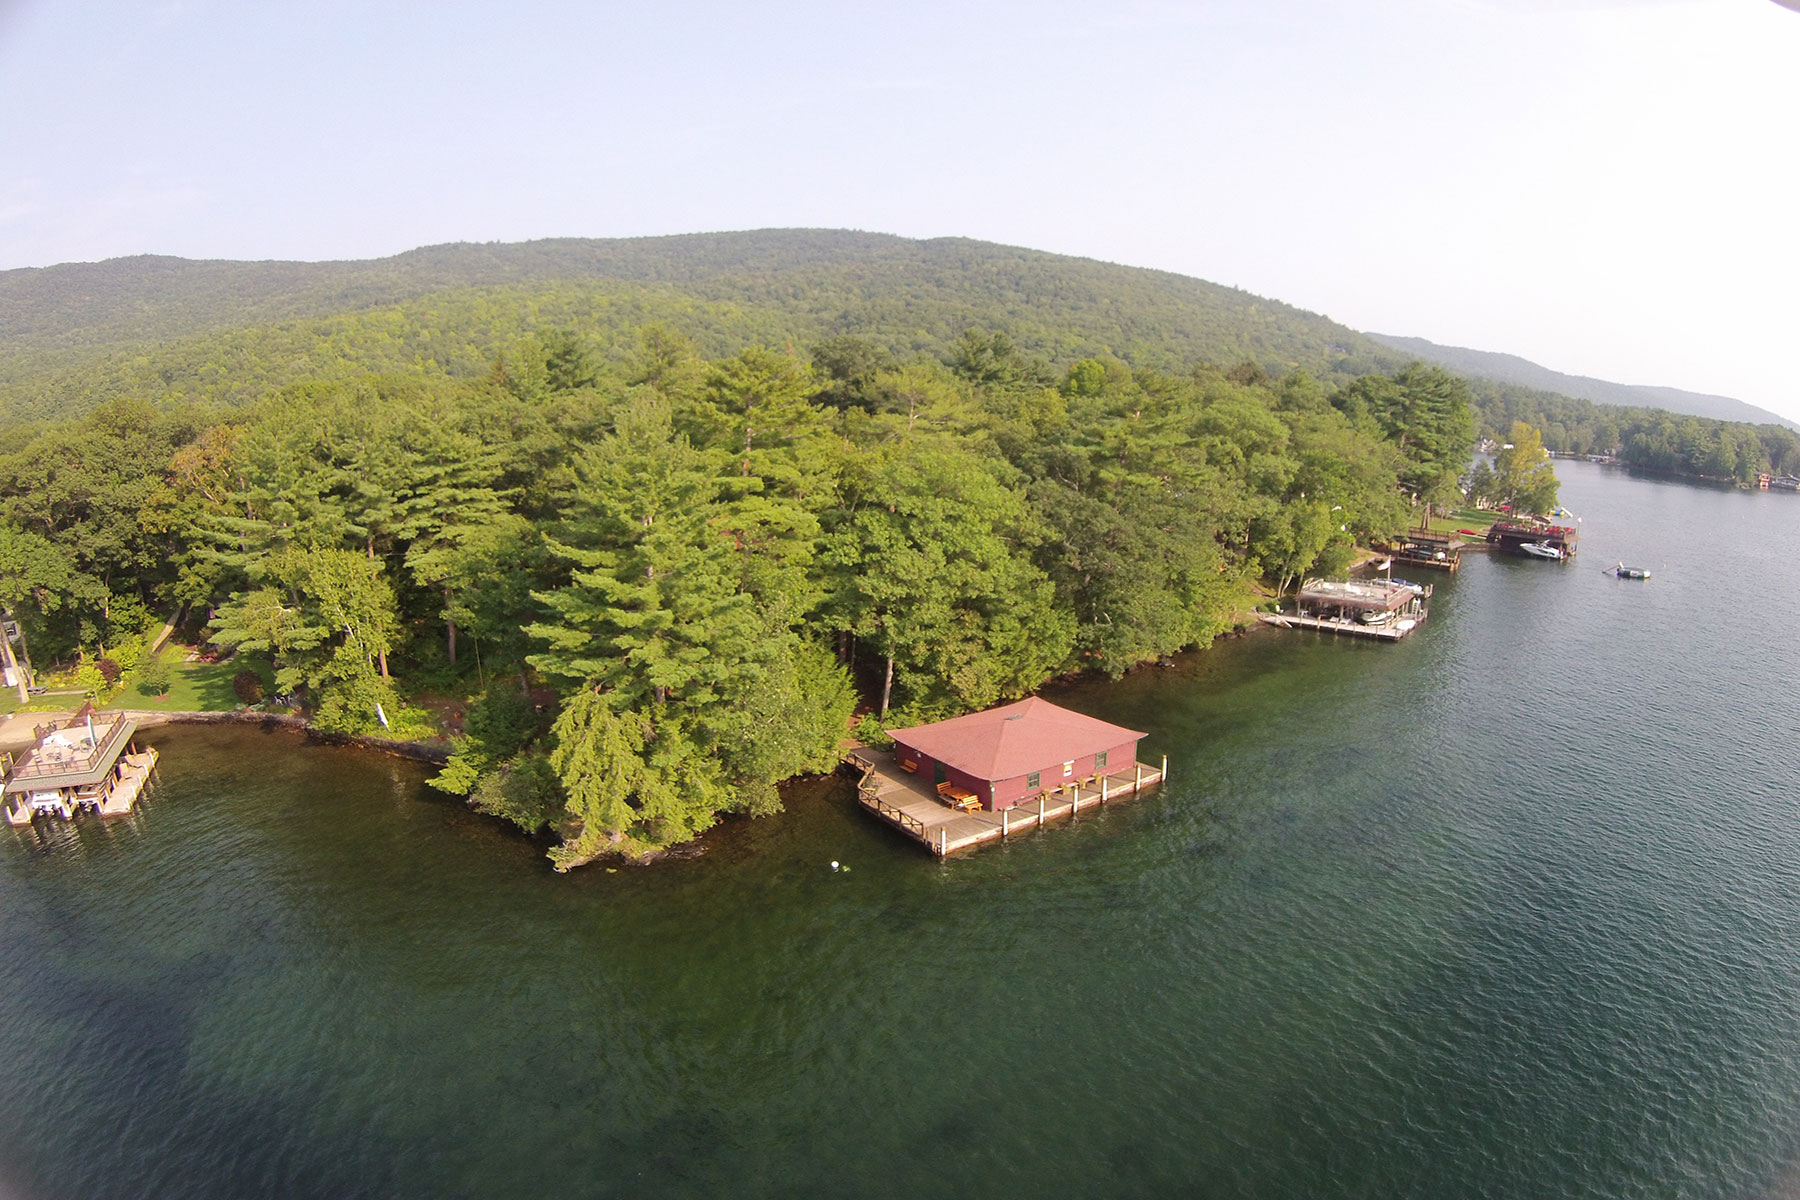 Single Family Home for Sale at Tapawingo - Lake George Waterfront 32 Bean Rd Kattskill Bay, New York 12844 United States